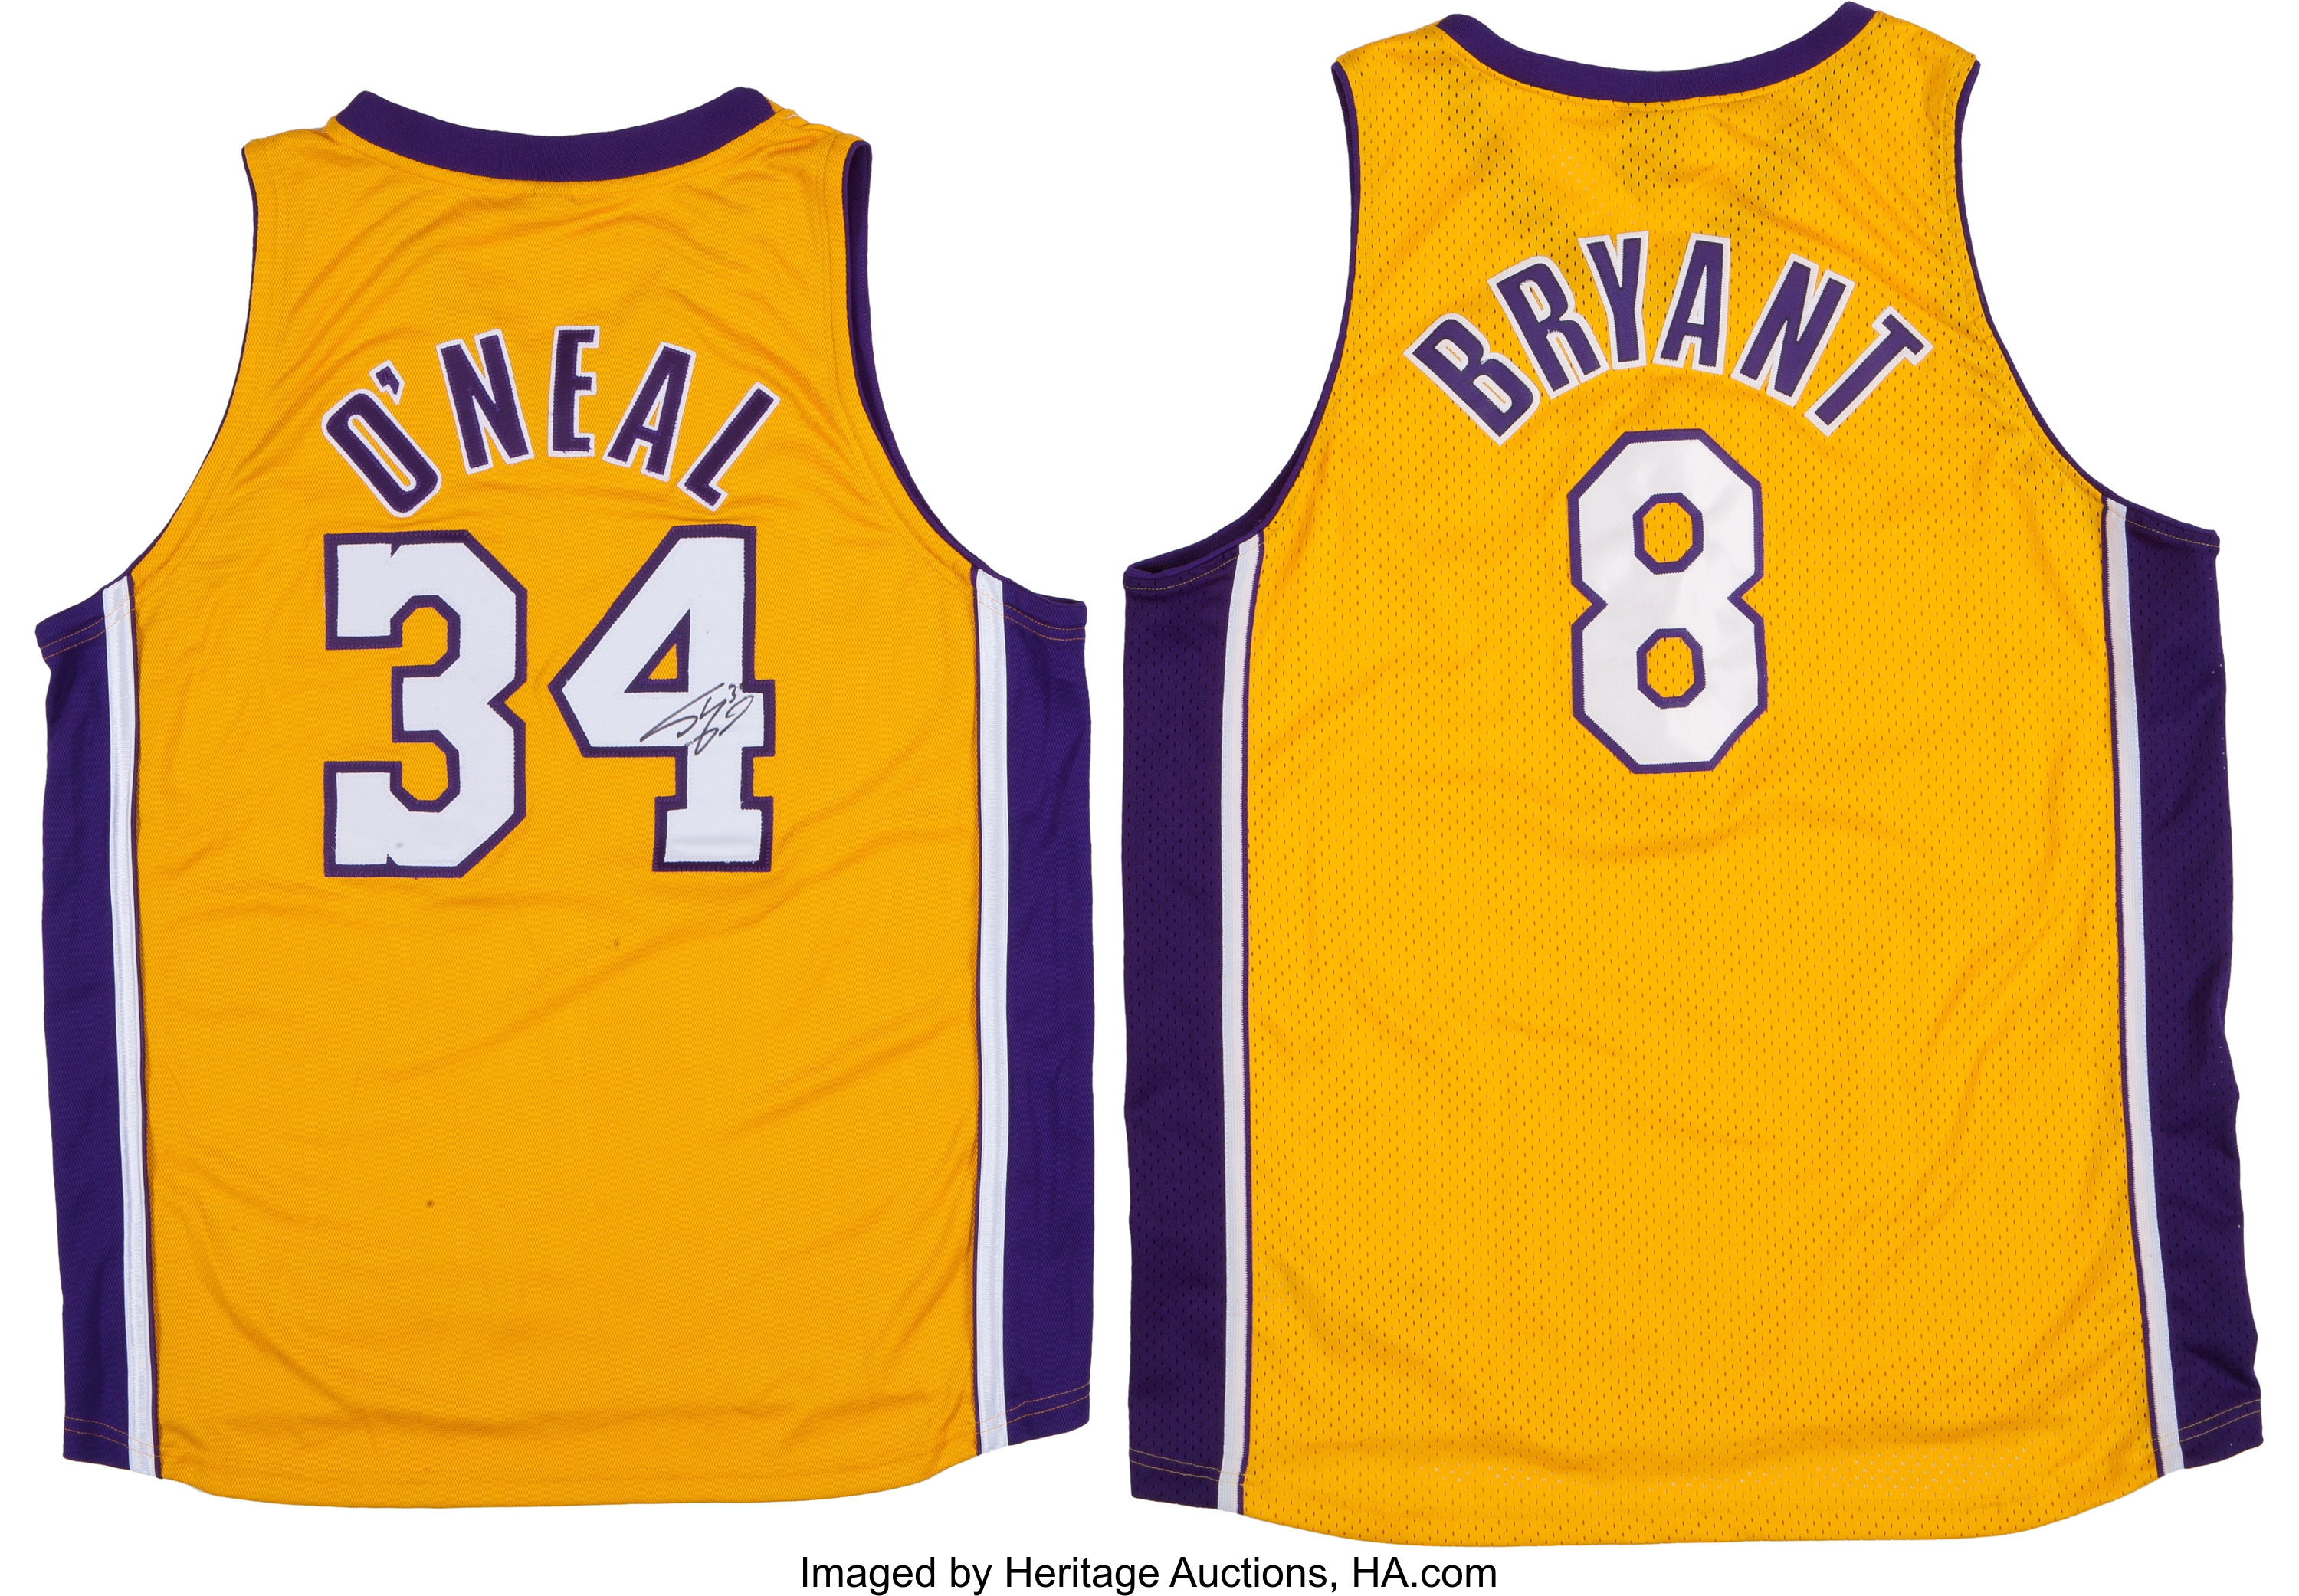 Shaquille O'Neal Signed Jersey and Unsigned Kobe Bryant Jersey ...